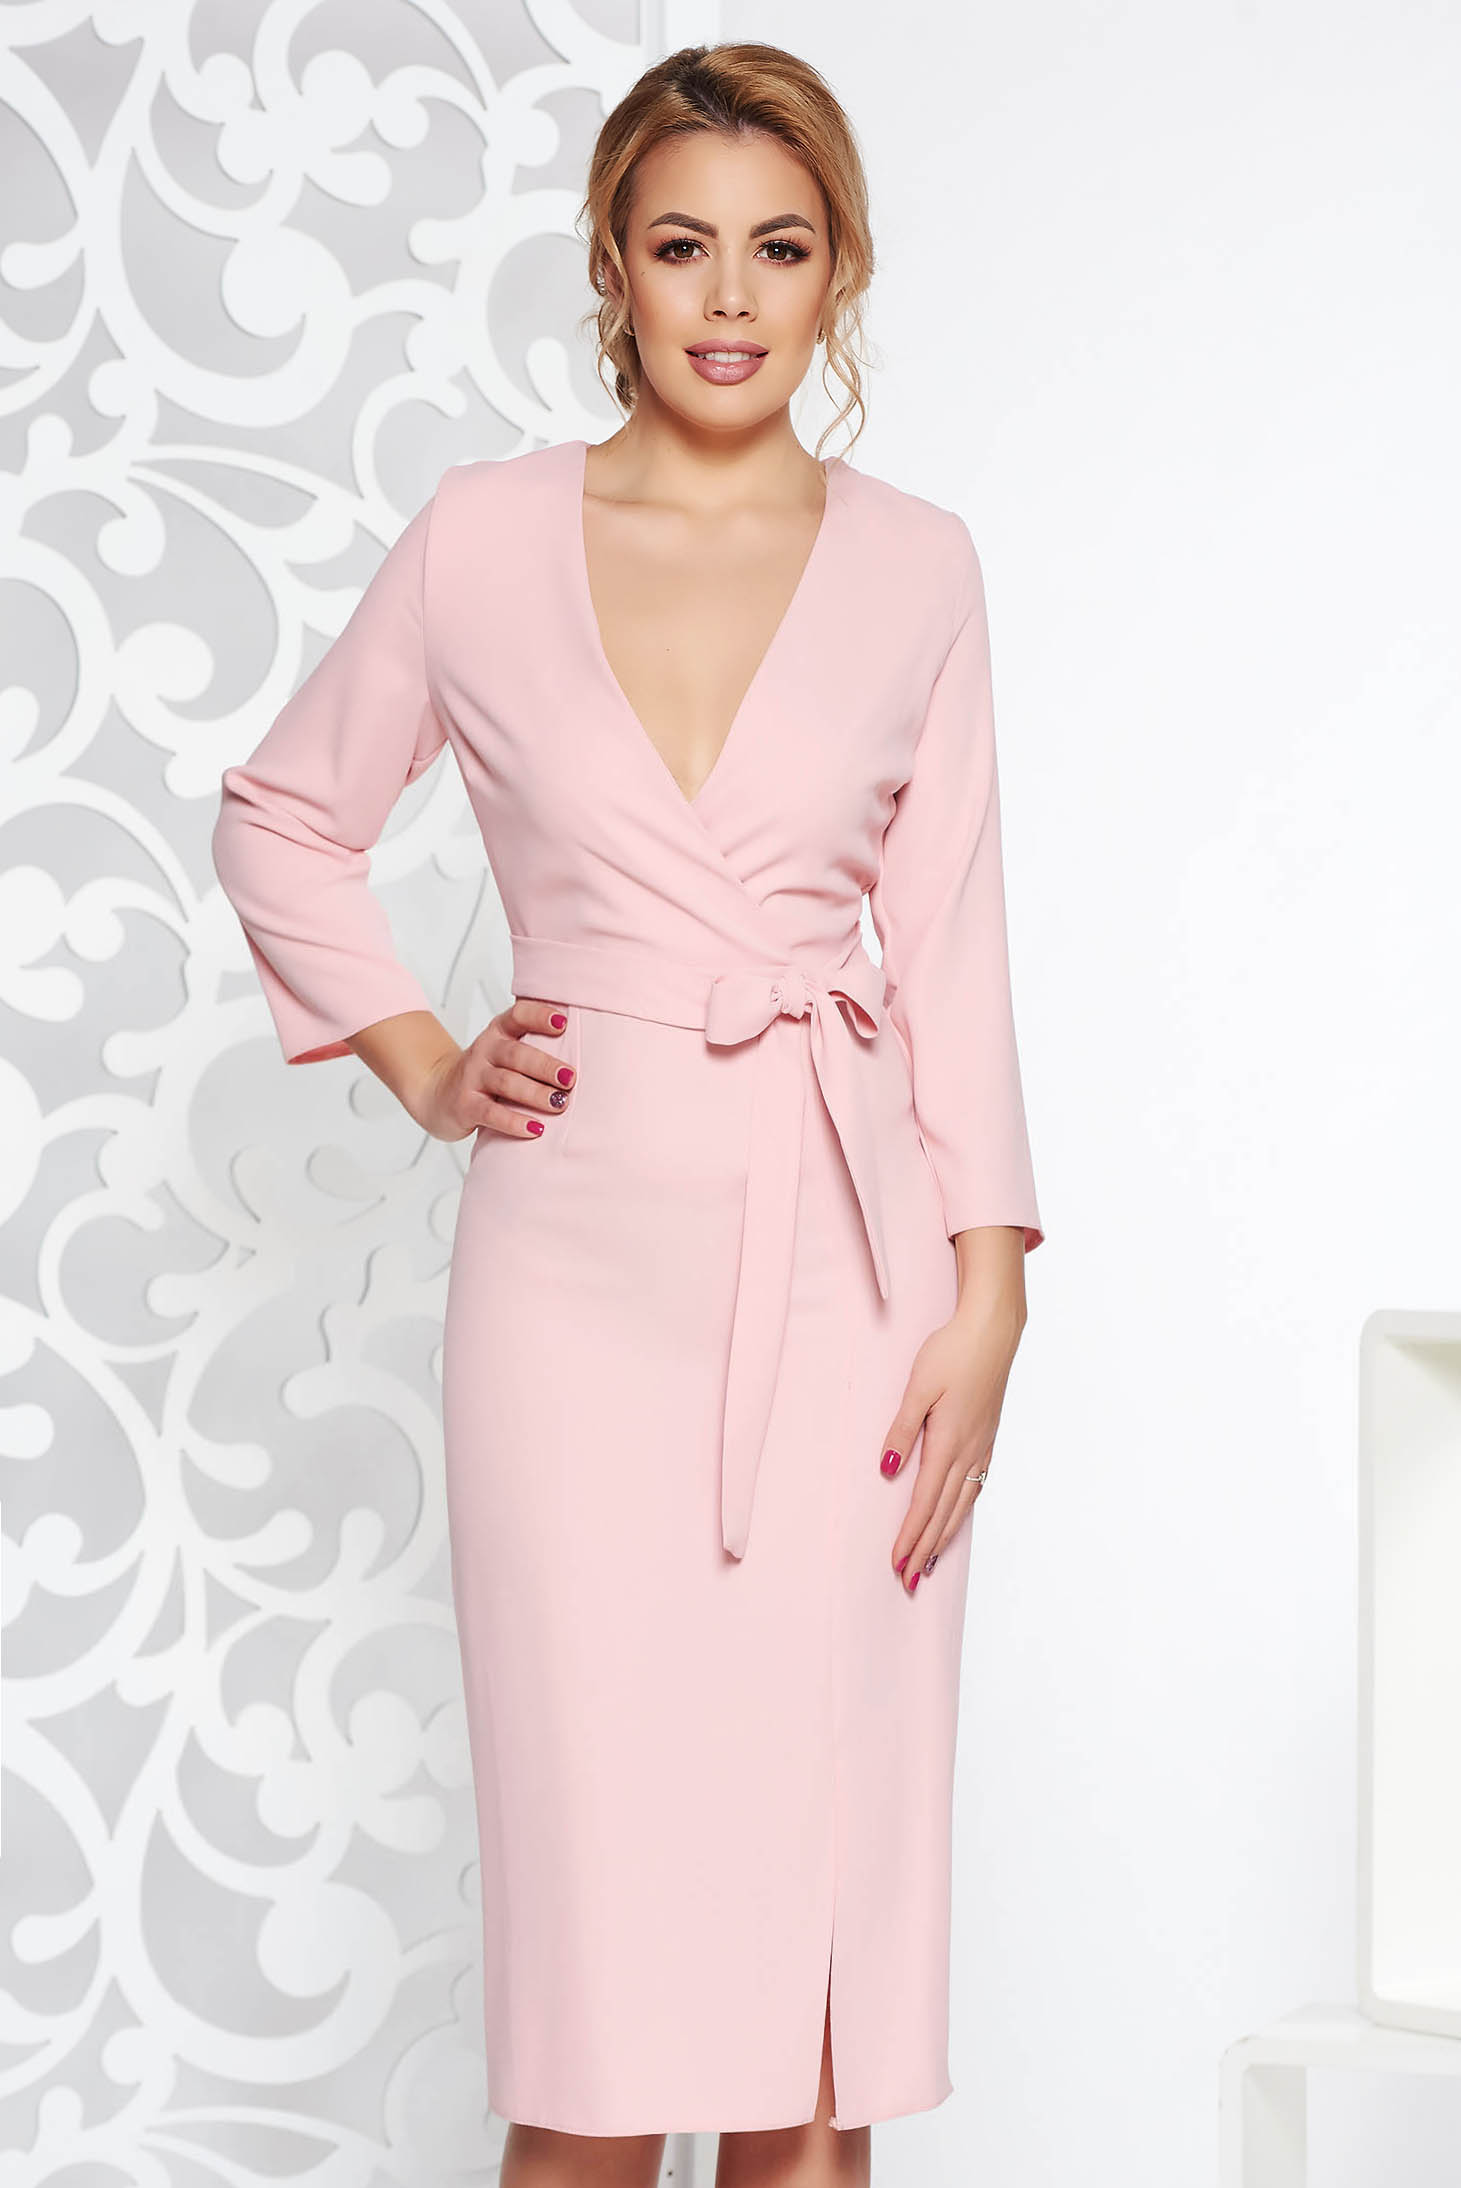 StarShinerS rosa elegant dress with v-neckline nonelastic fabric accessorized with tied waistband